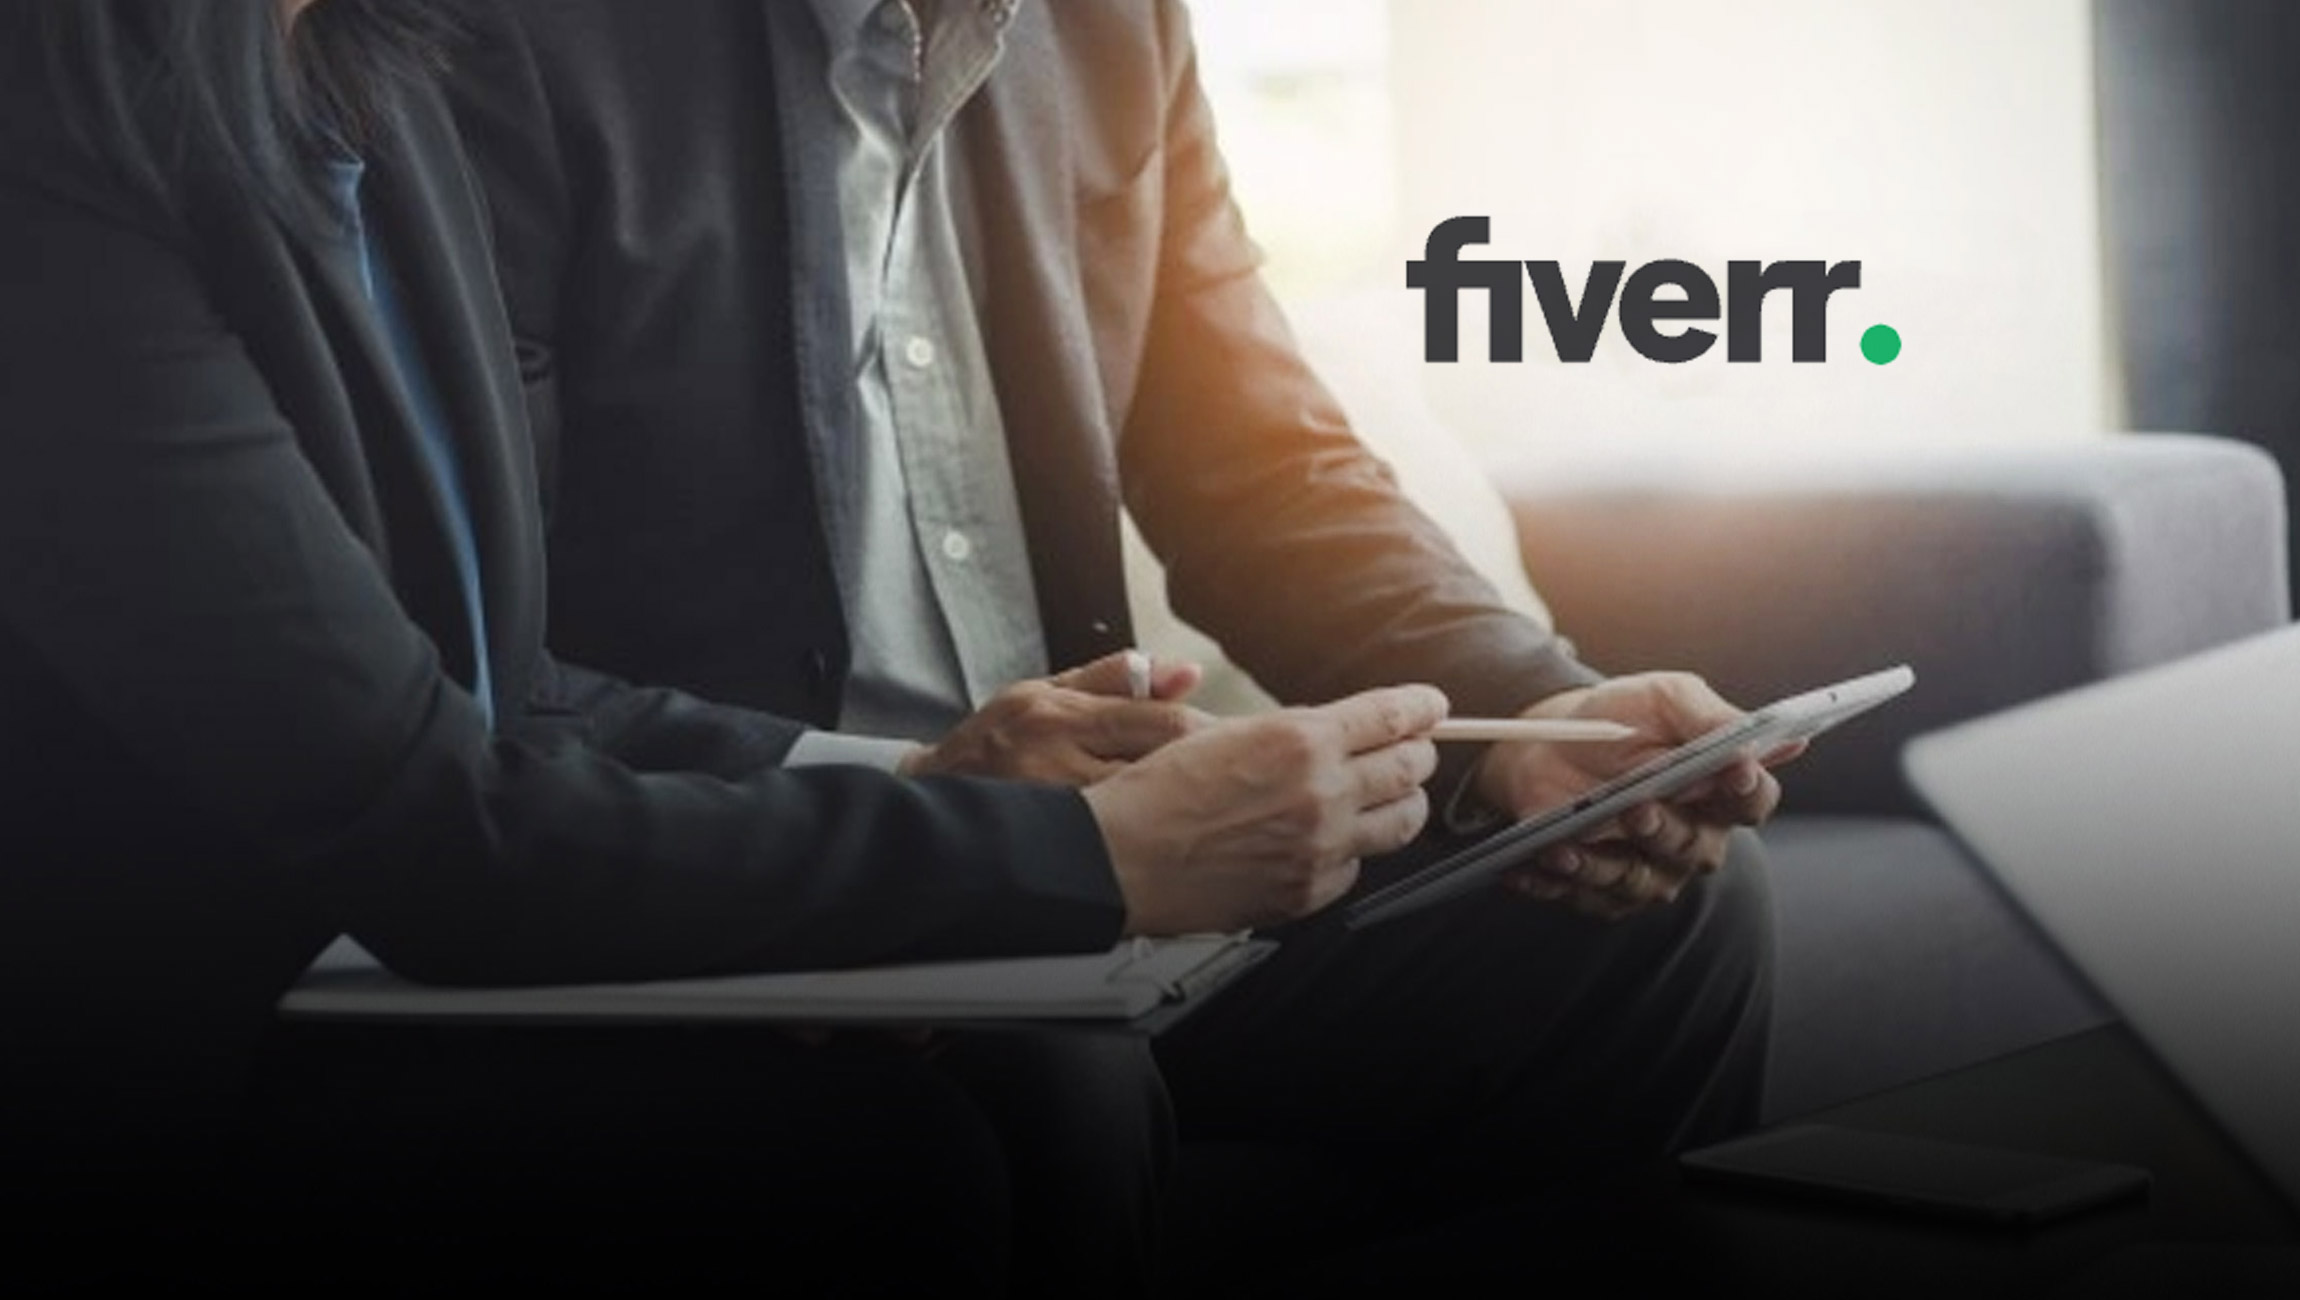 Fiverr's-Fall-2021-Small-Business-Needs-Index-Reveals-Importance-of-Retail-Adapting-to-Hybrid-Models